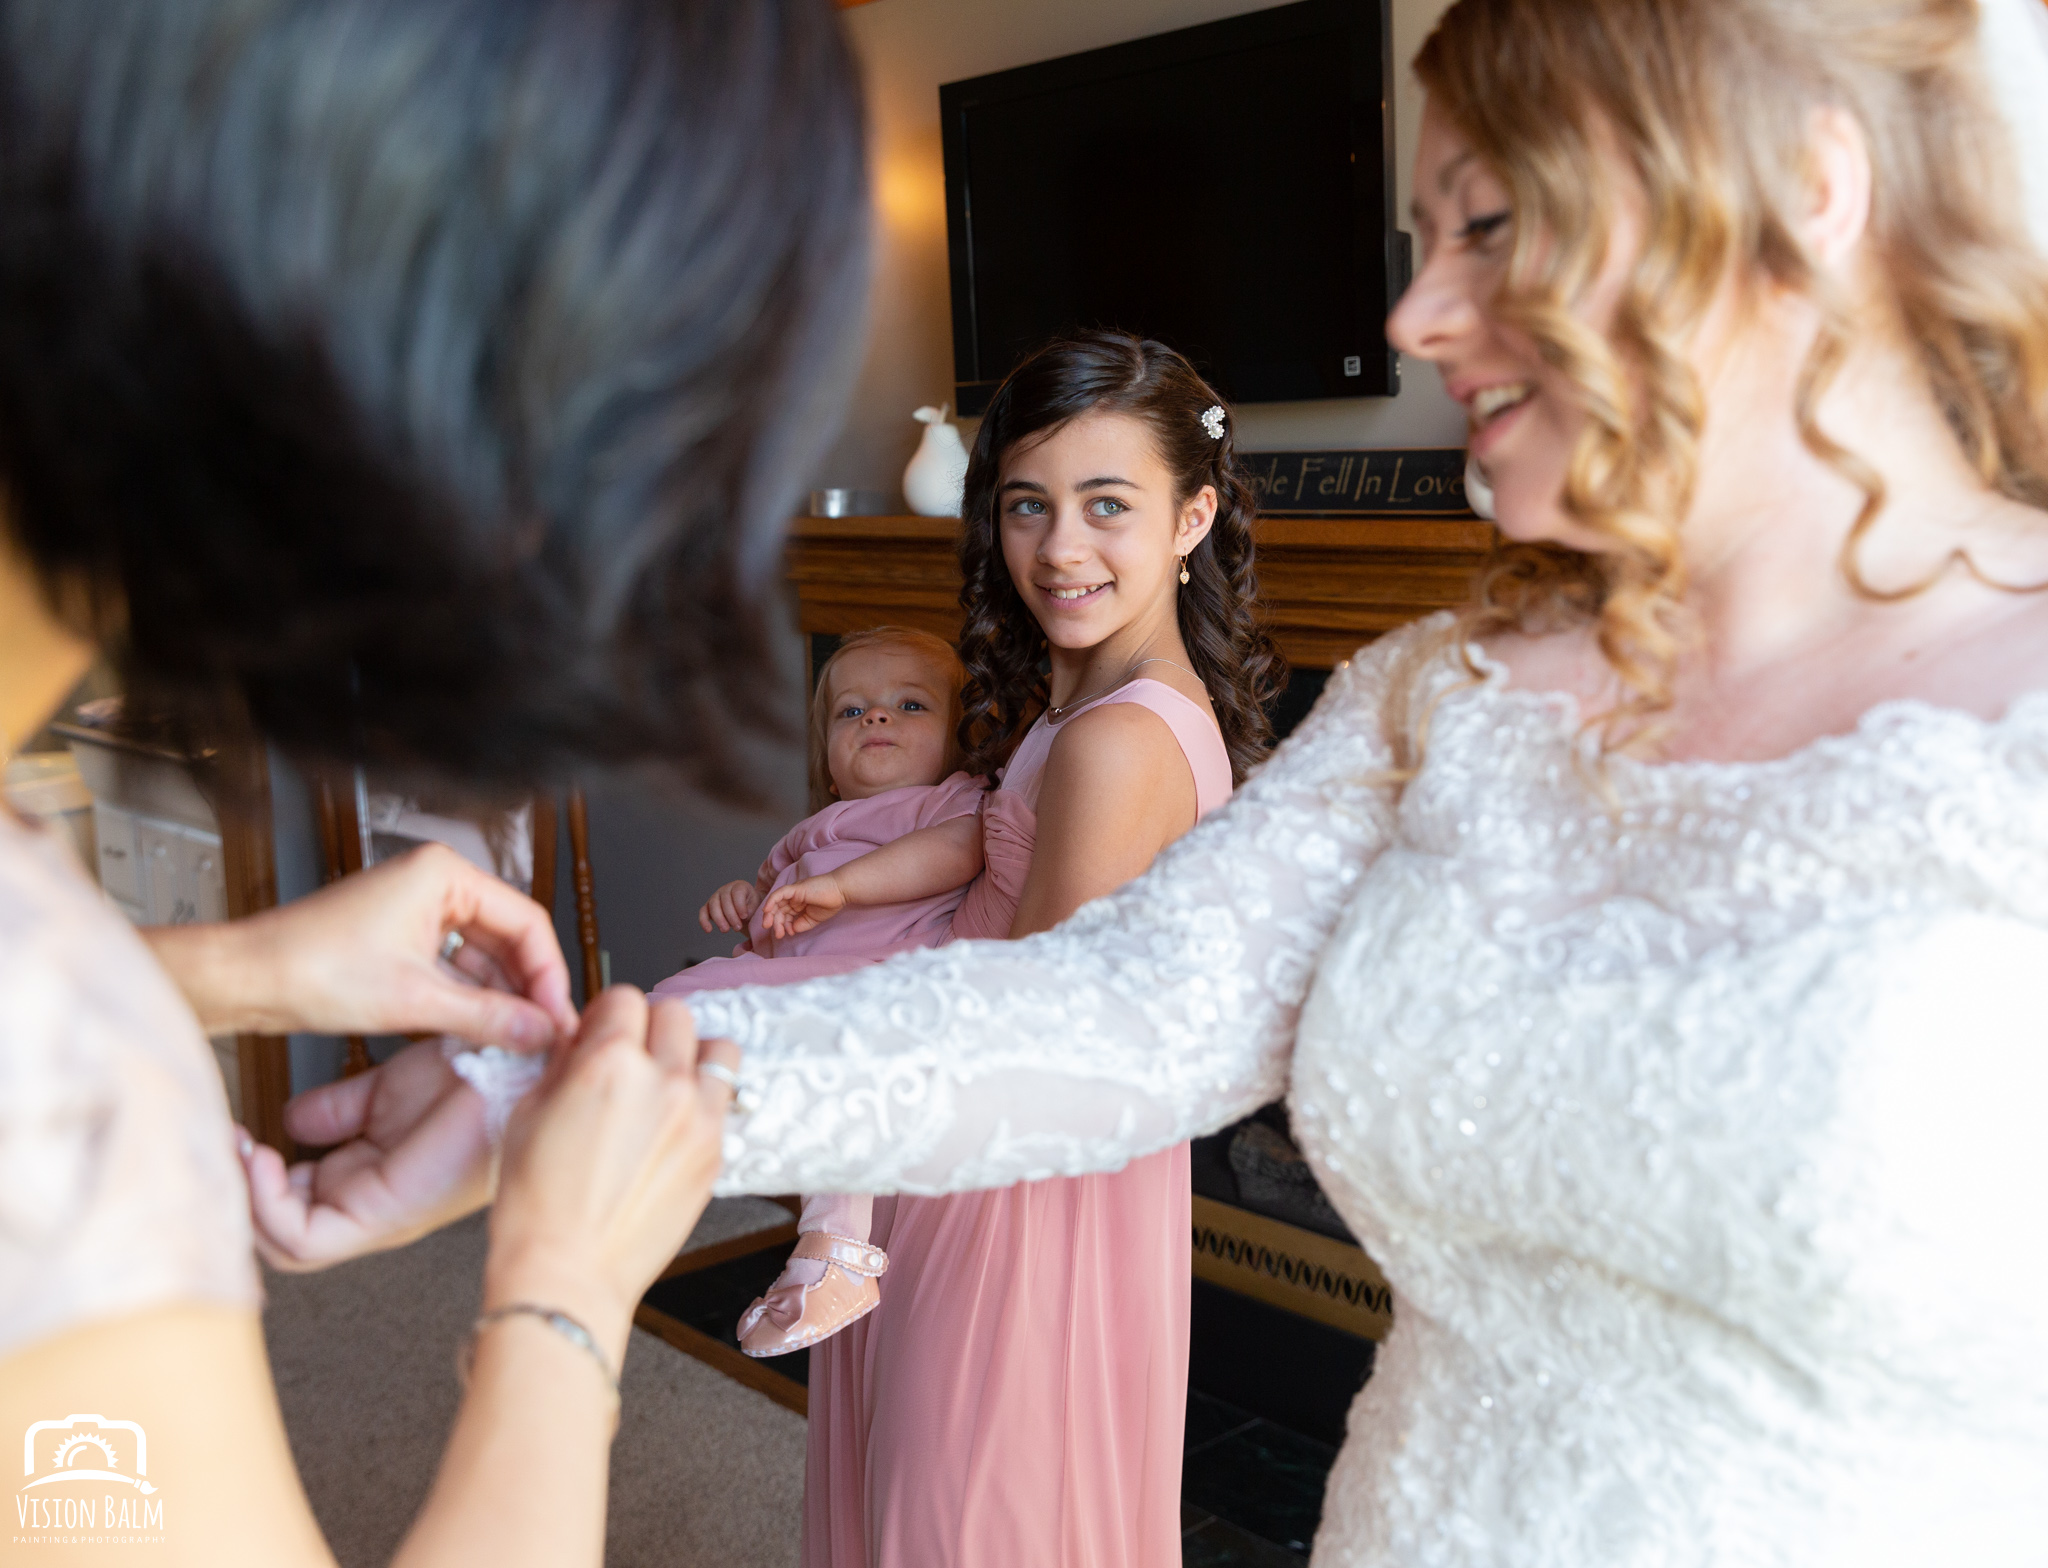 Lifestyle wedding photo of bride getting help with her dress in Zuka's Hilltop Barn by Vision Balm in Charleston, SC.